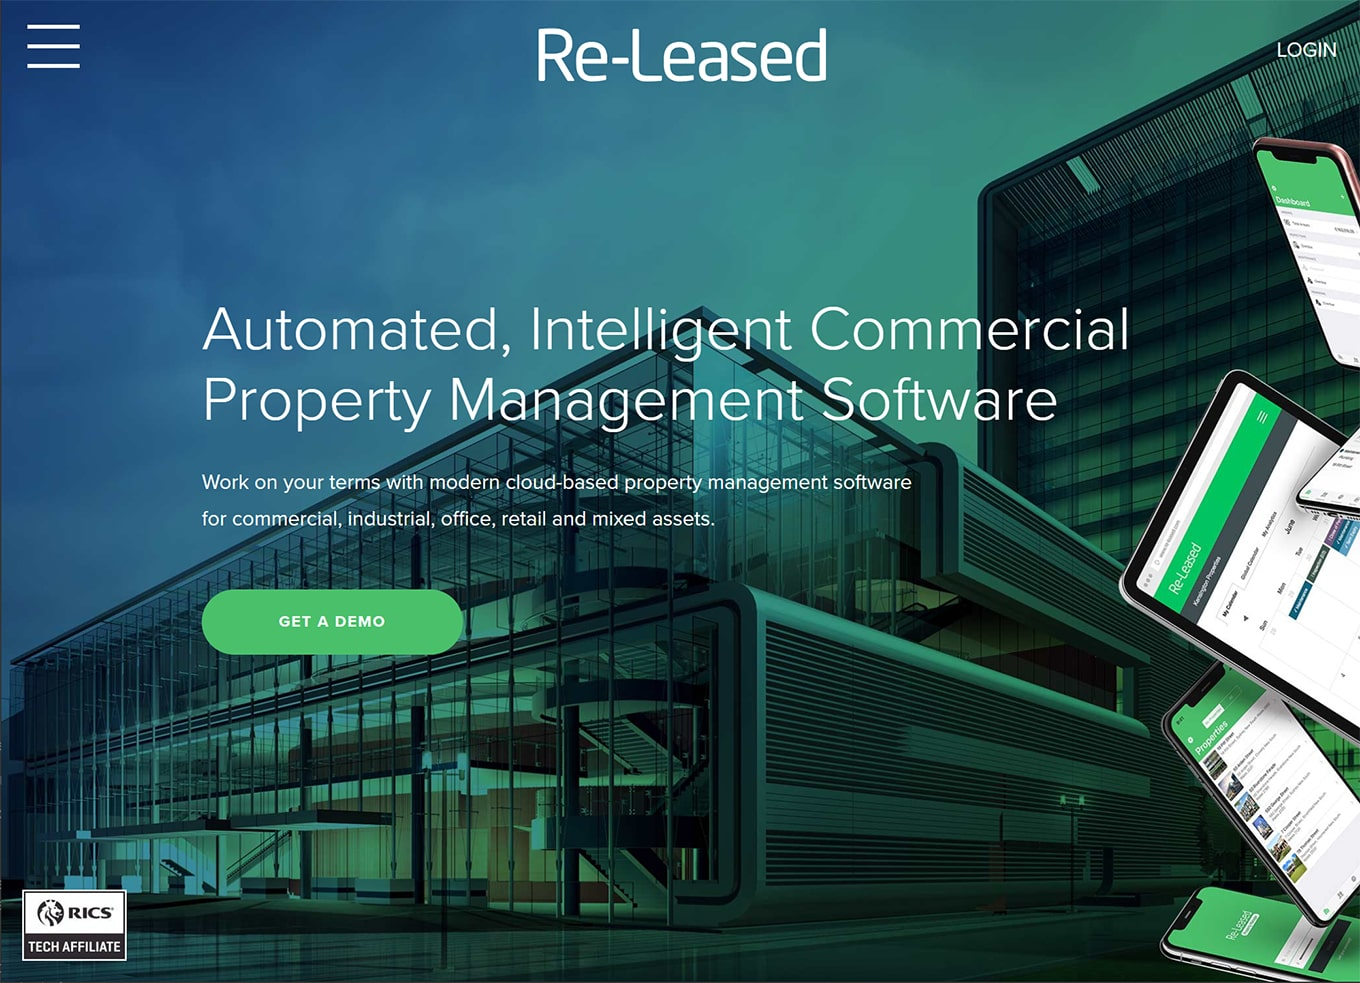 re-leased commercial property management software